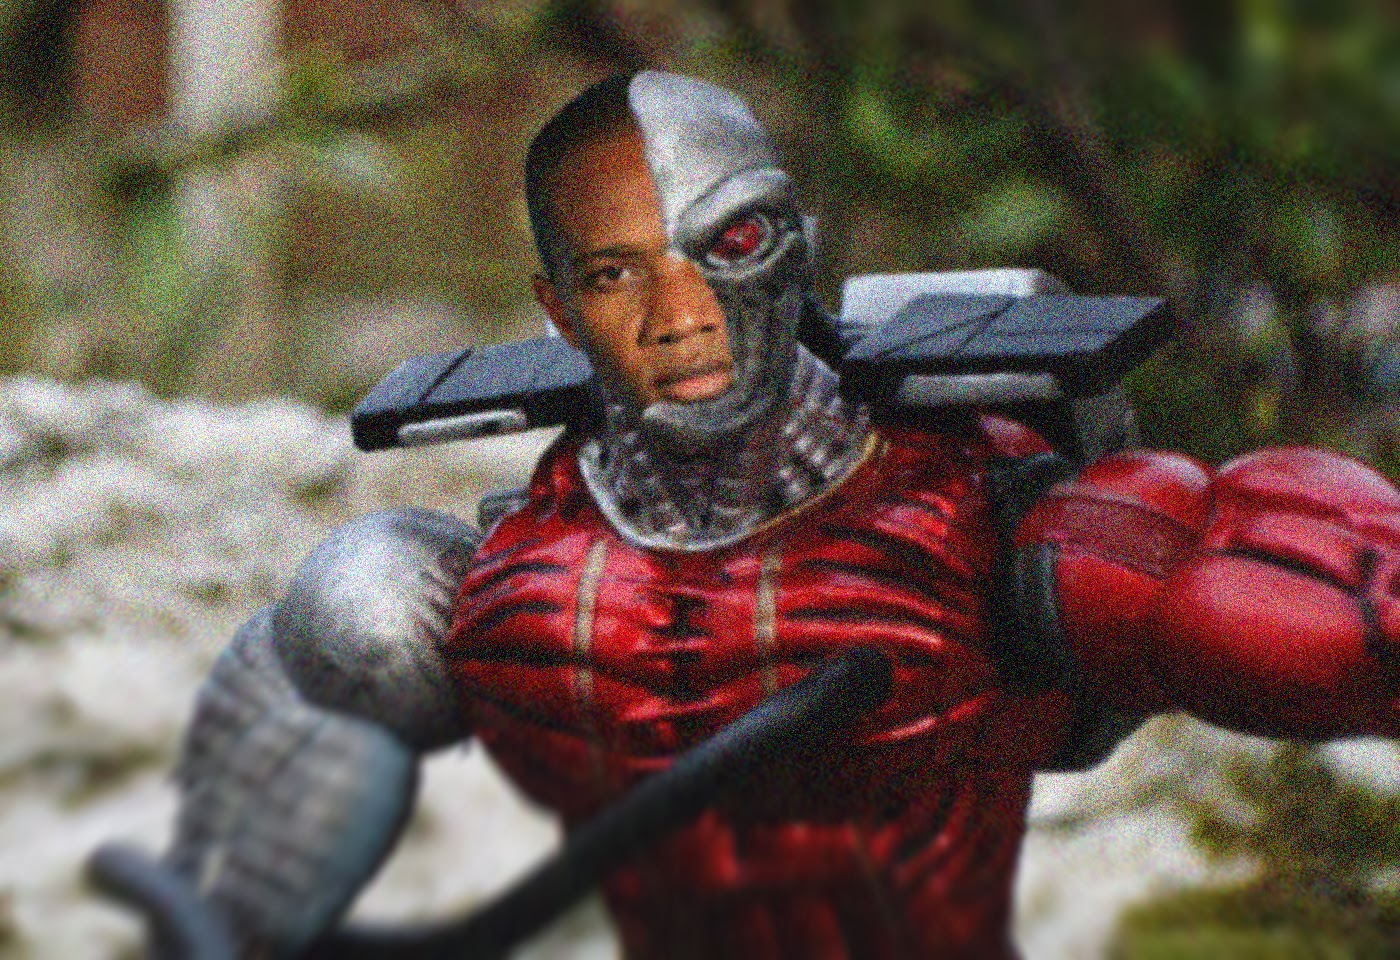 SHIELD LEaked Deathlok Firstlook